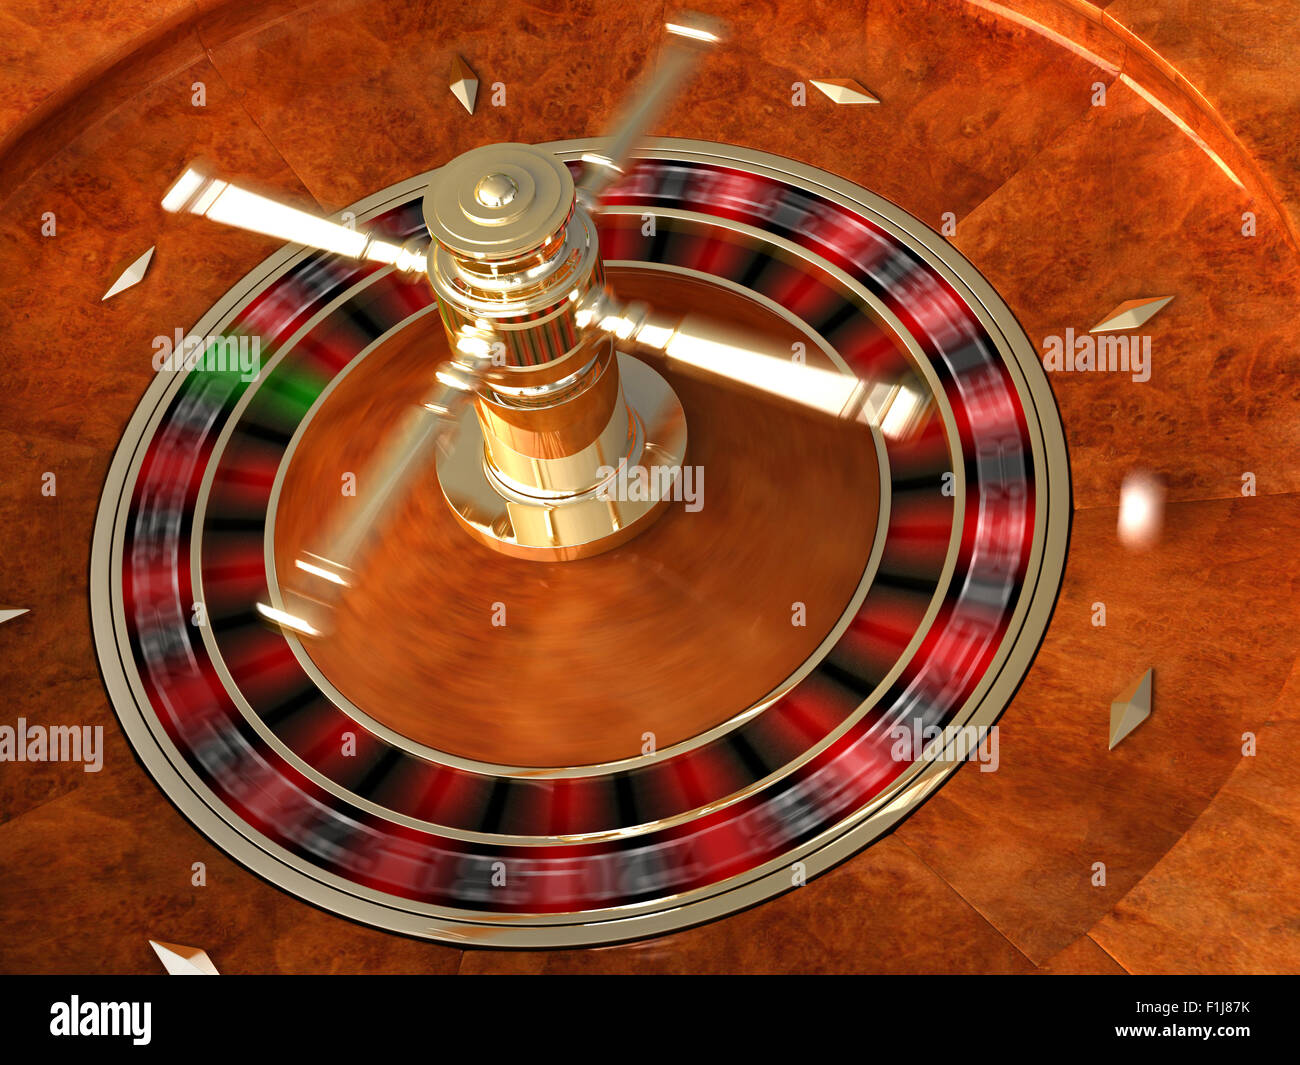 3d render of rotating casino roulette with simulated motion blur - Stock Image